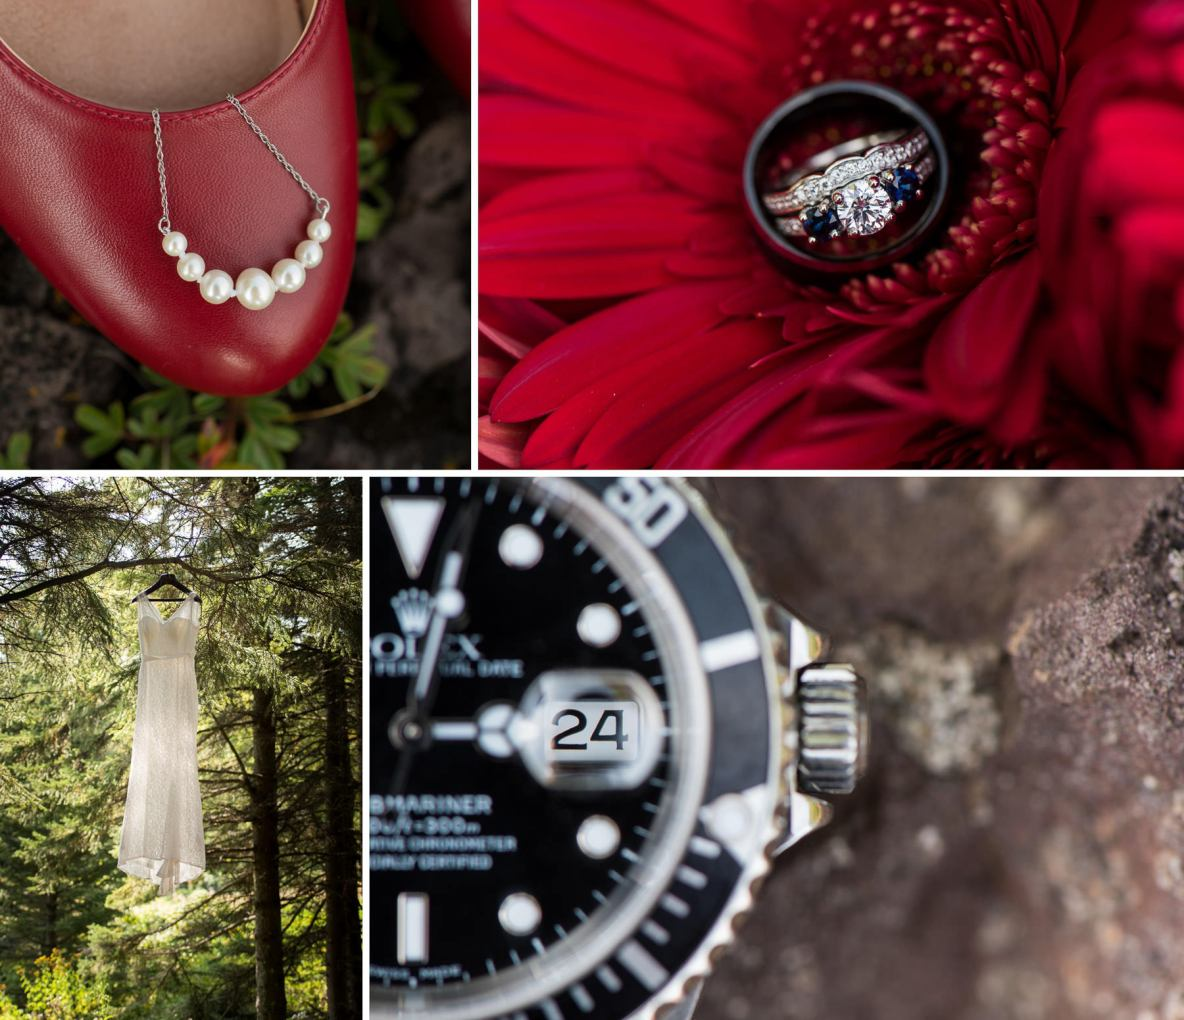 Photos of the bride's shoes, dress and rings.